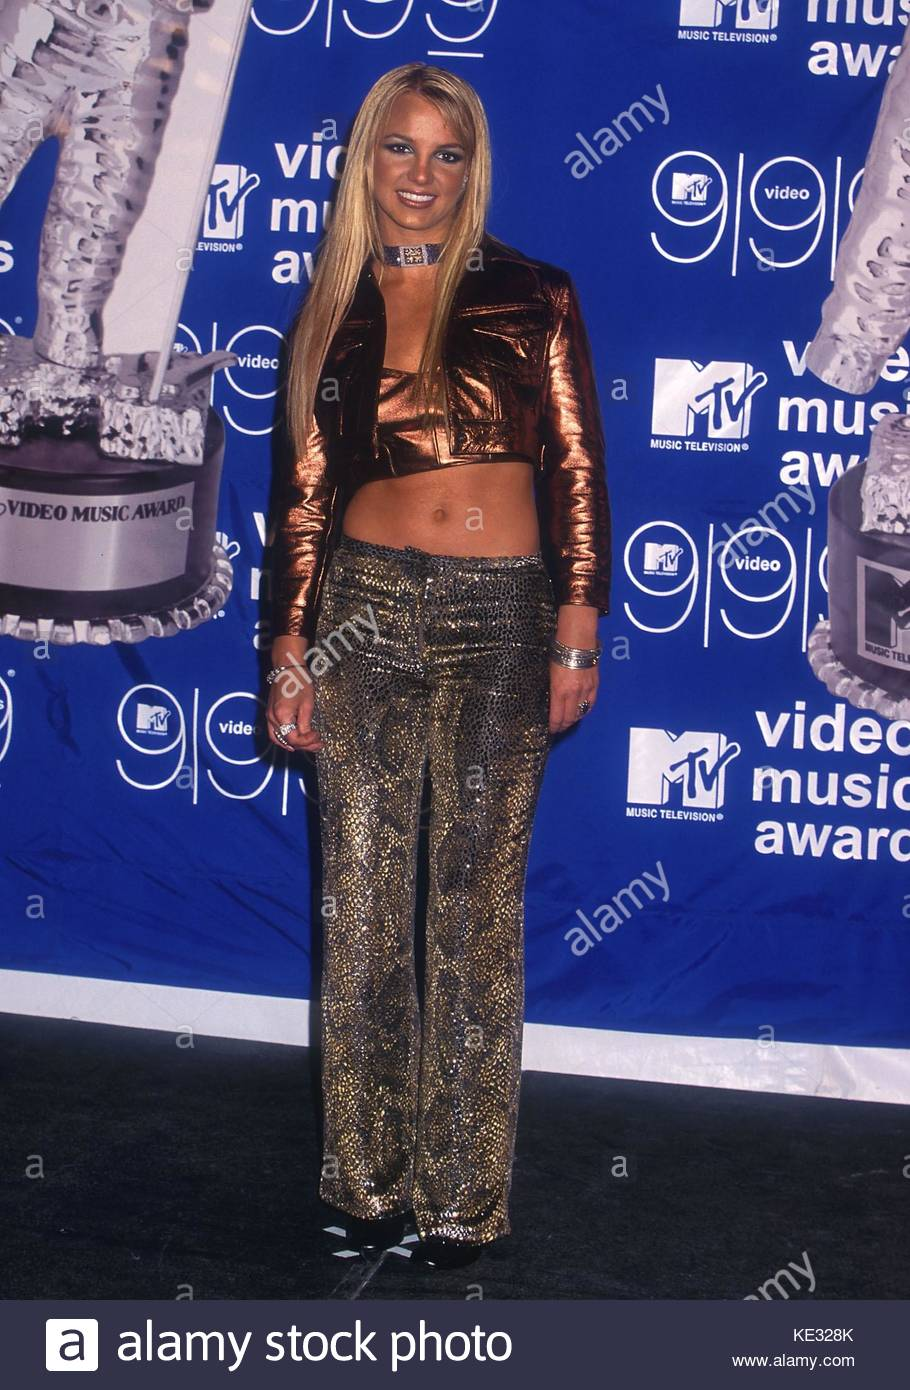 Britney Spears At The 1999 MTV Video Music Awards Metropolitan Opera House In New